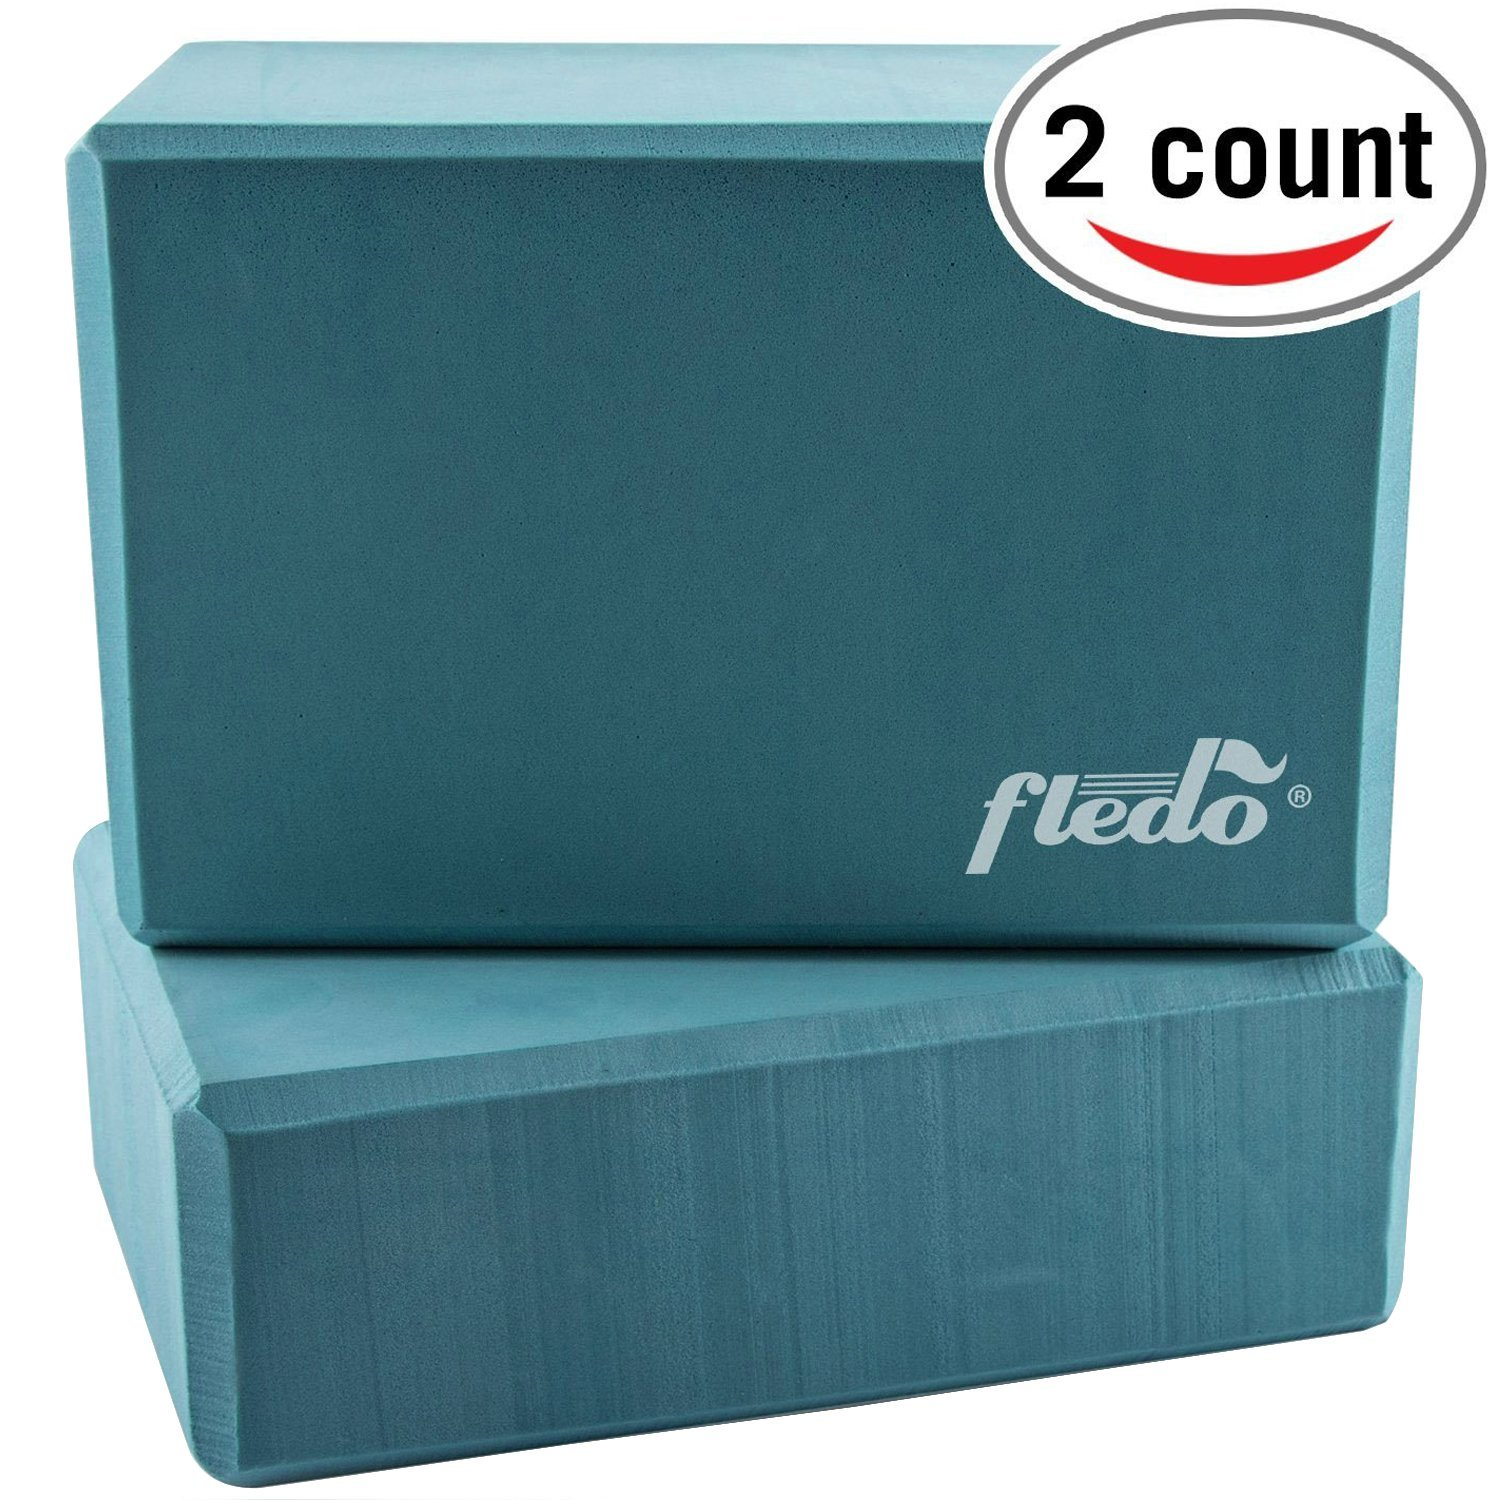 fledo turquoise eva foam yoga blocks